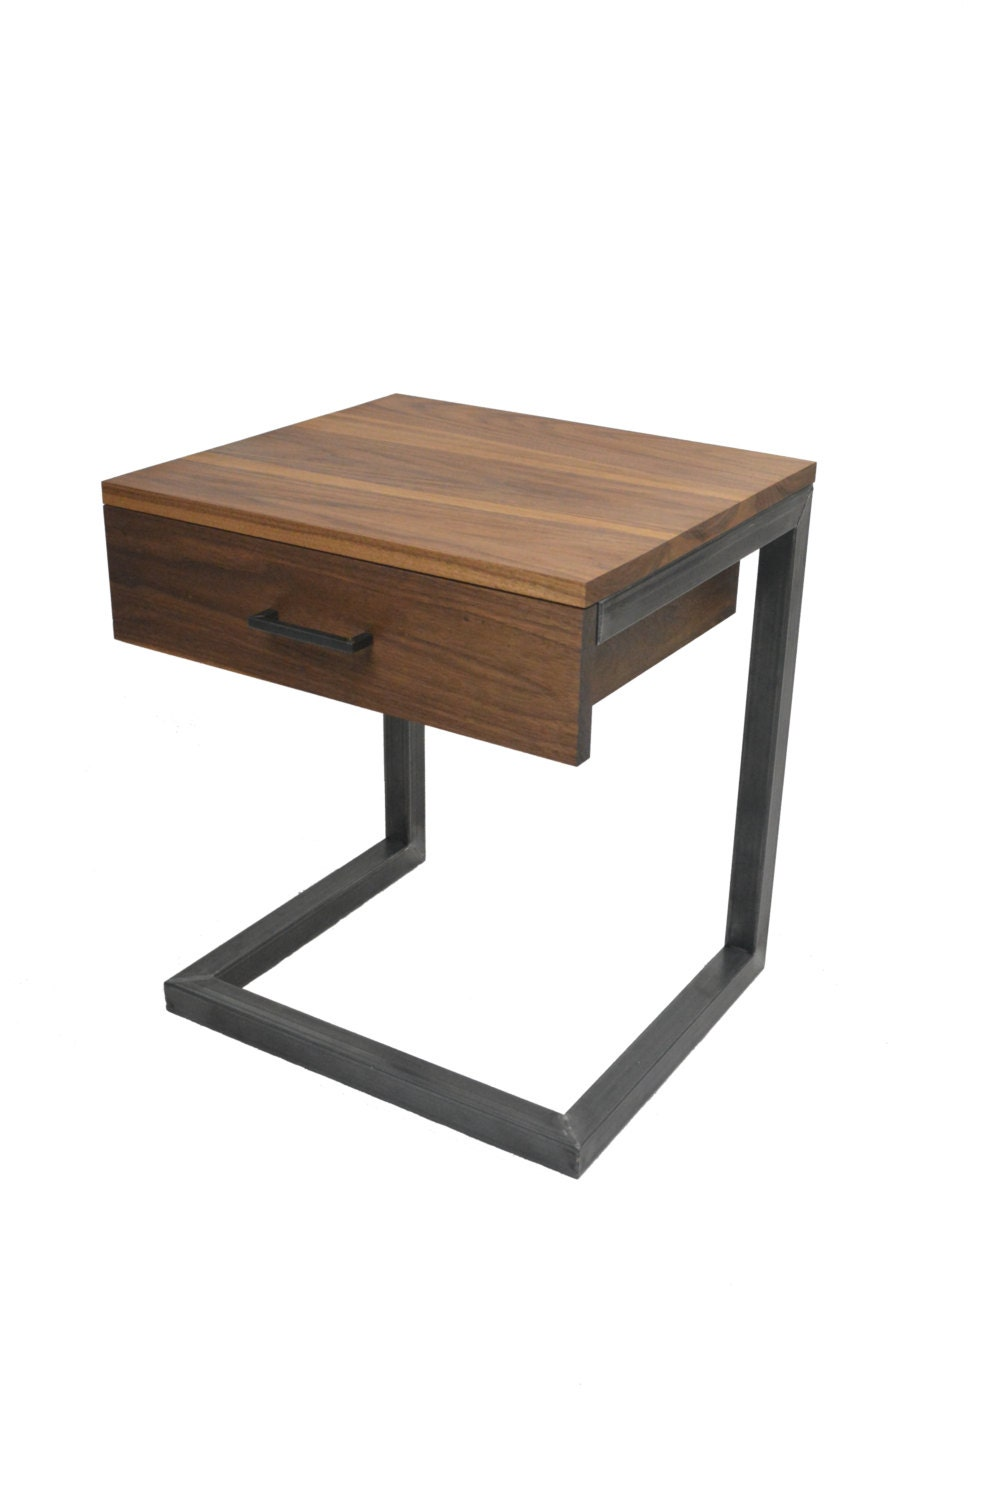 C table nightstand side table bedside table end table for Nightstands and bedside tables